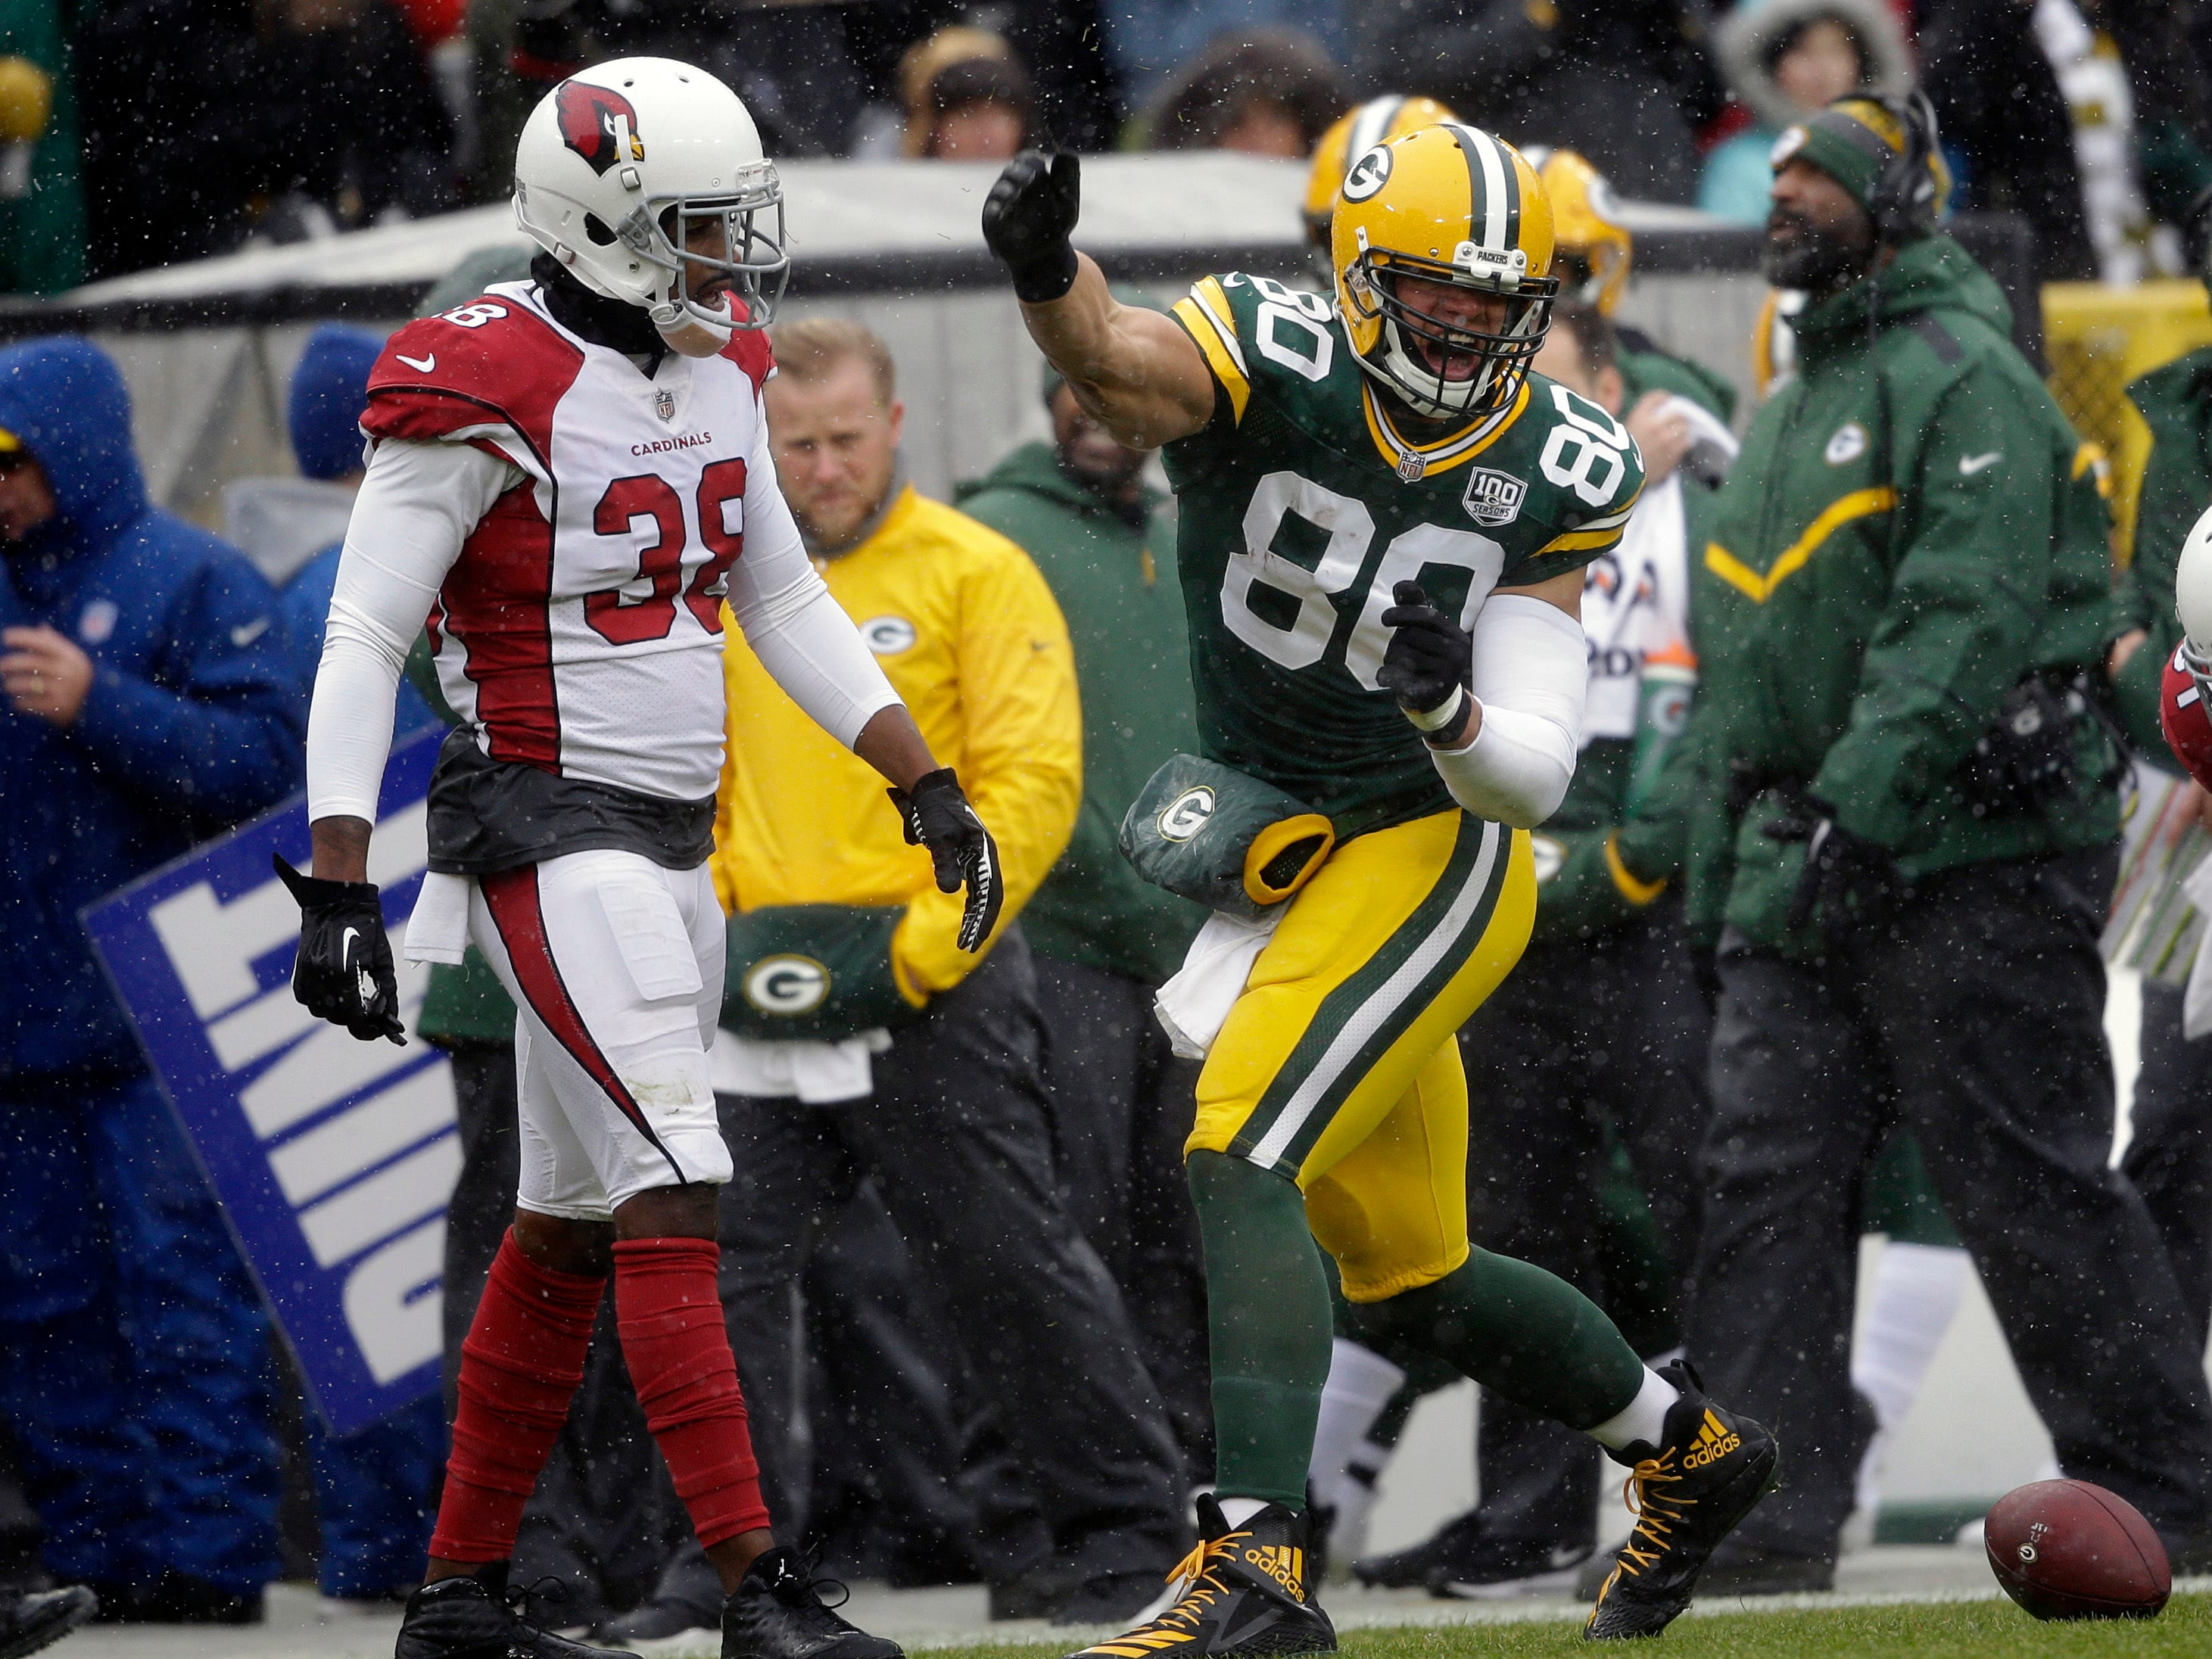 Green Bay Packers tight end Jimmy Graham (80) signals first down after making a catch while being covered by Arizona Cardinals defensive back David Amerson (38) during the first half of an NFL football game Sunday, Dec. 2, 2018, in Green Bay, Wis. (AP Photo/Jeffrey Phelps)